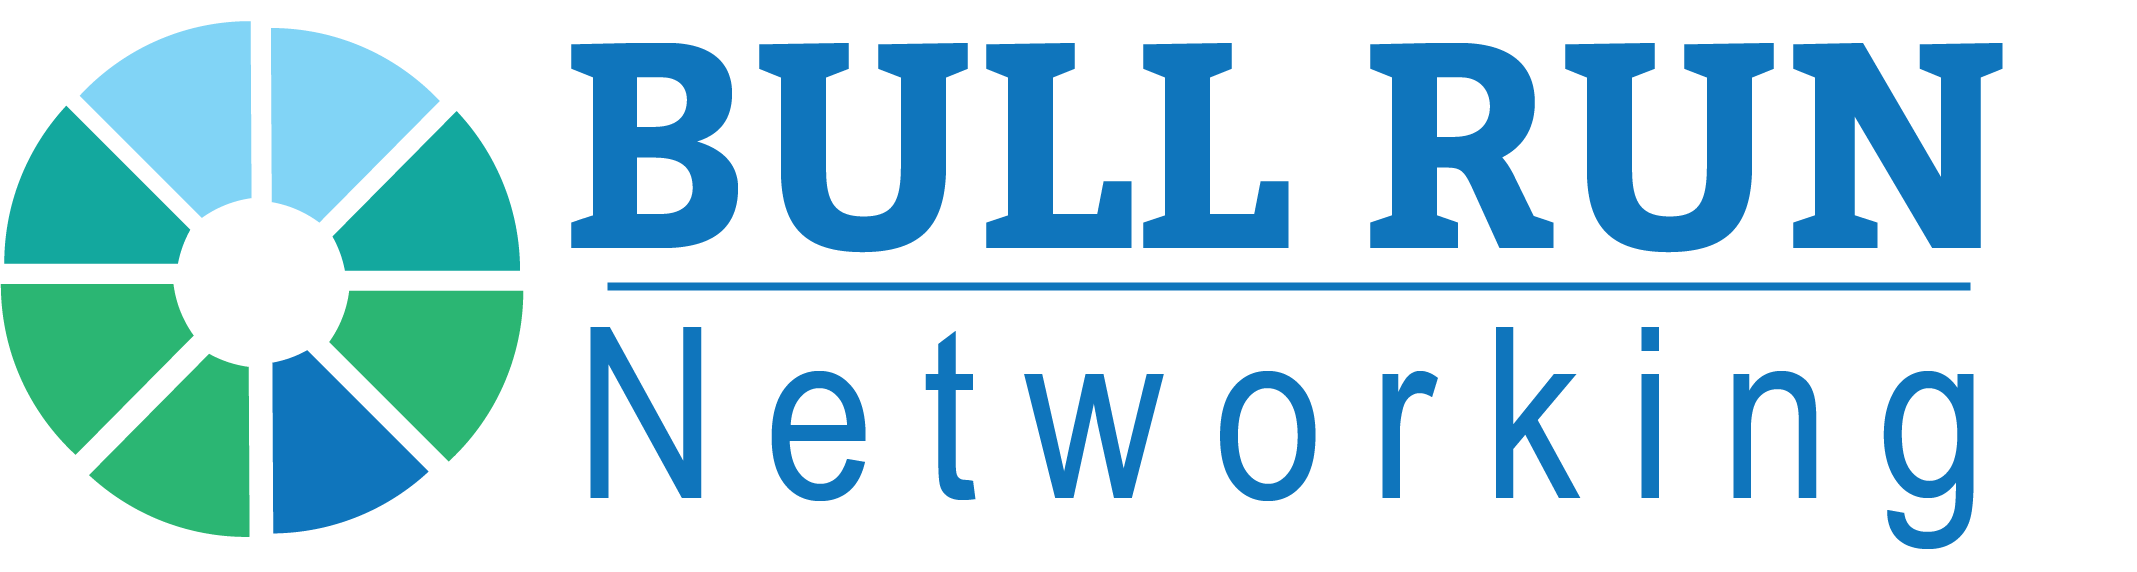 Bull Run Networking Group